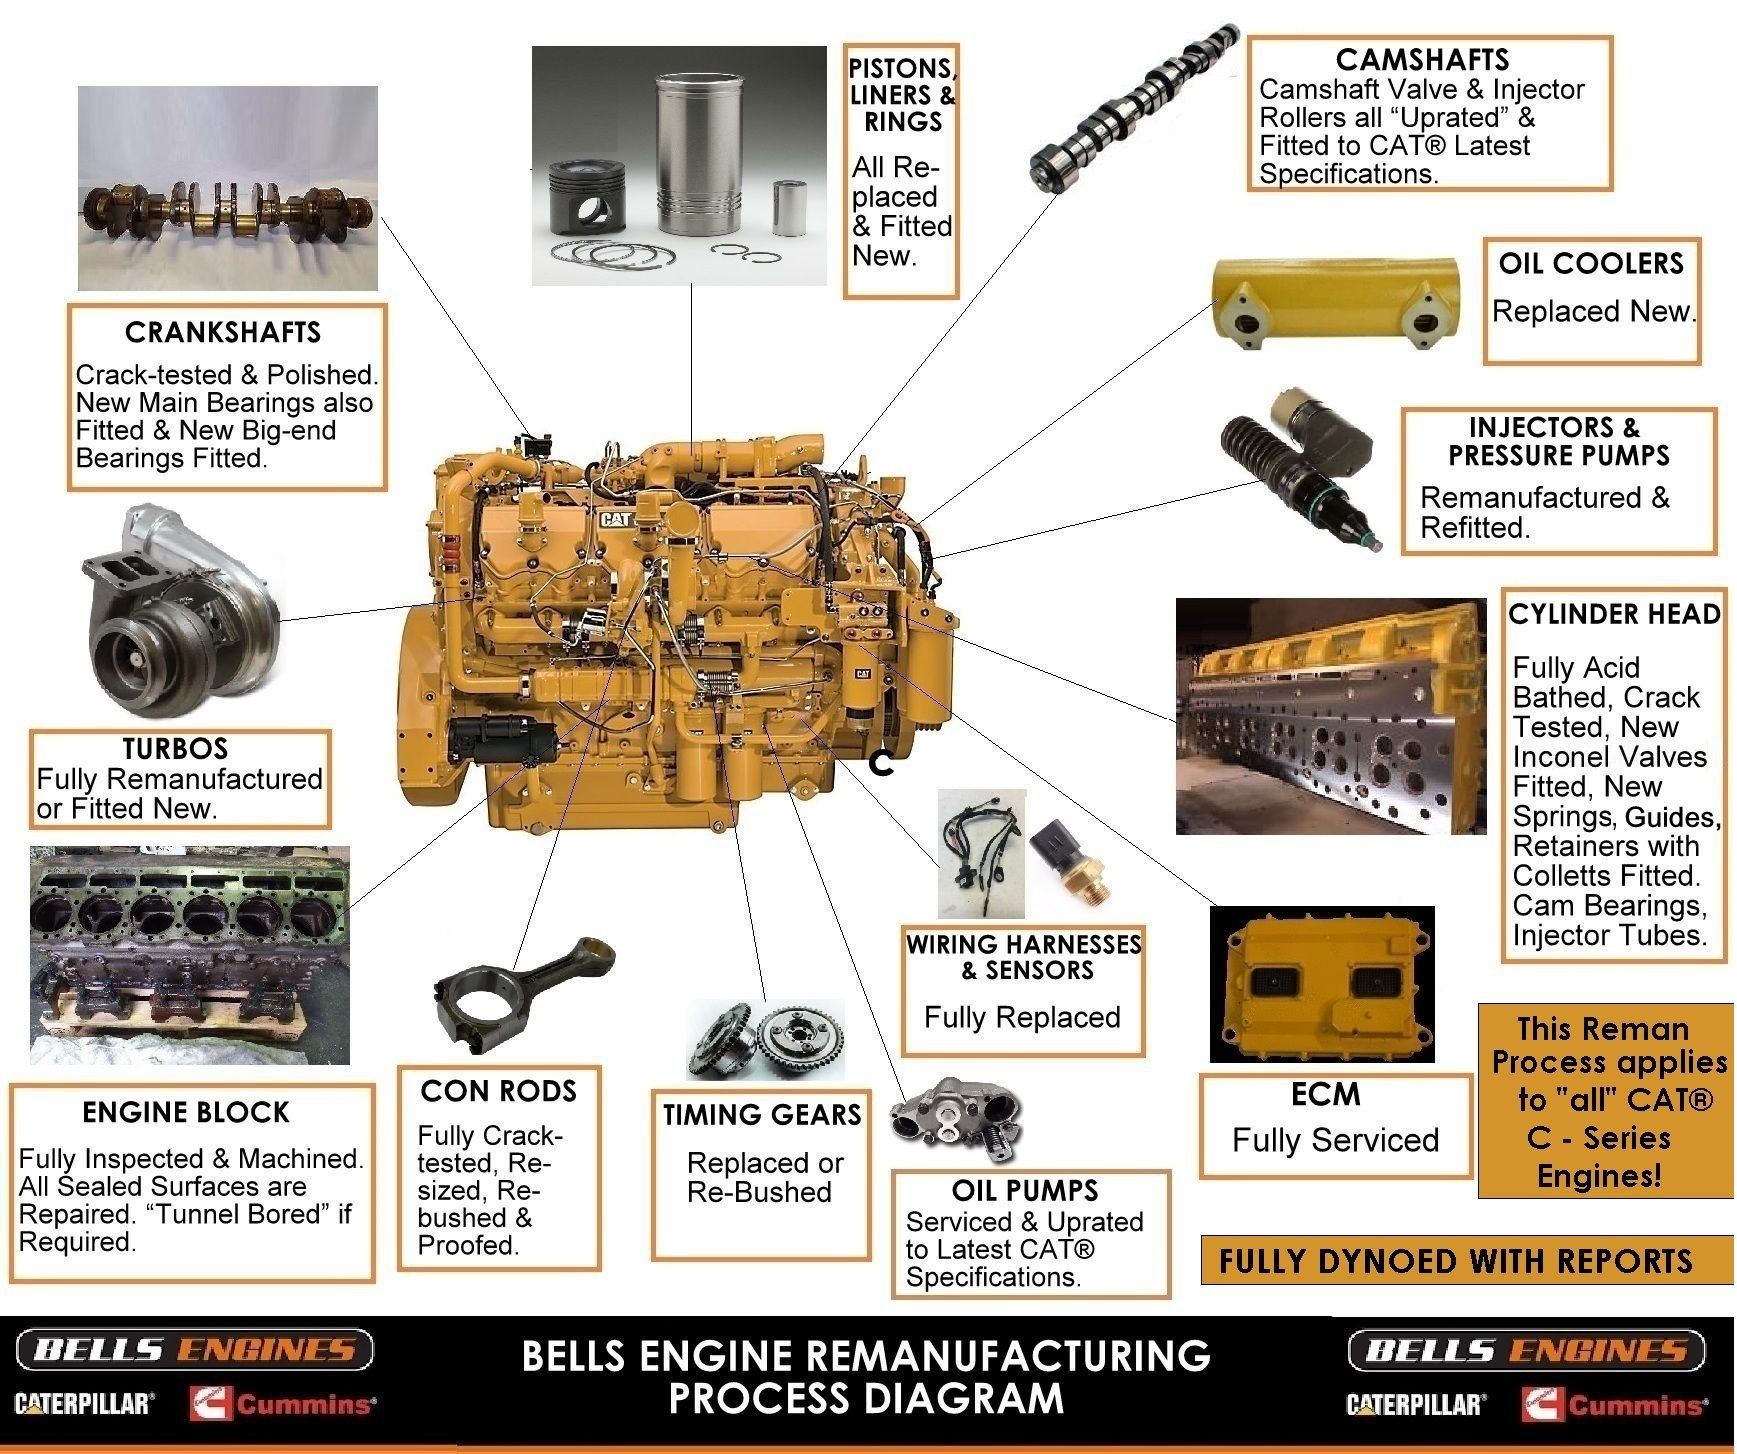 The Caterpillar® and Cummins® Engine Remanufacturing Process